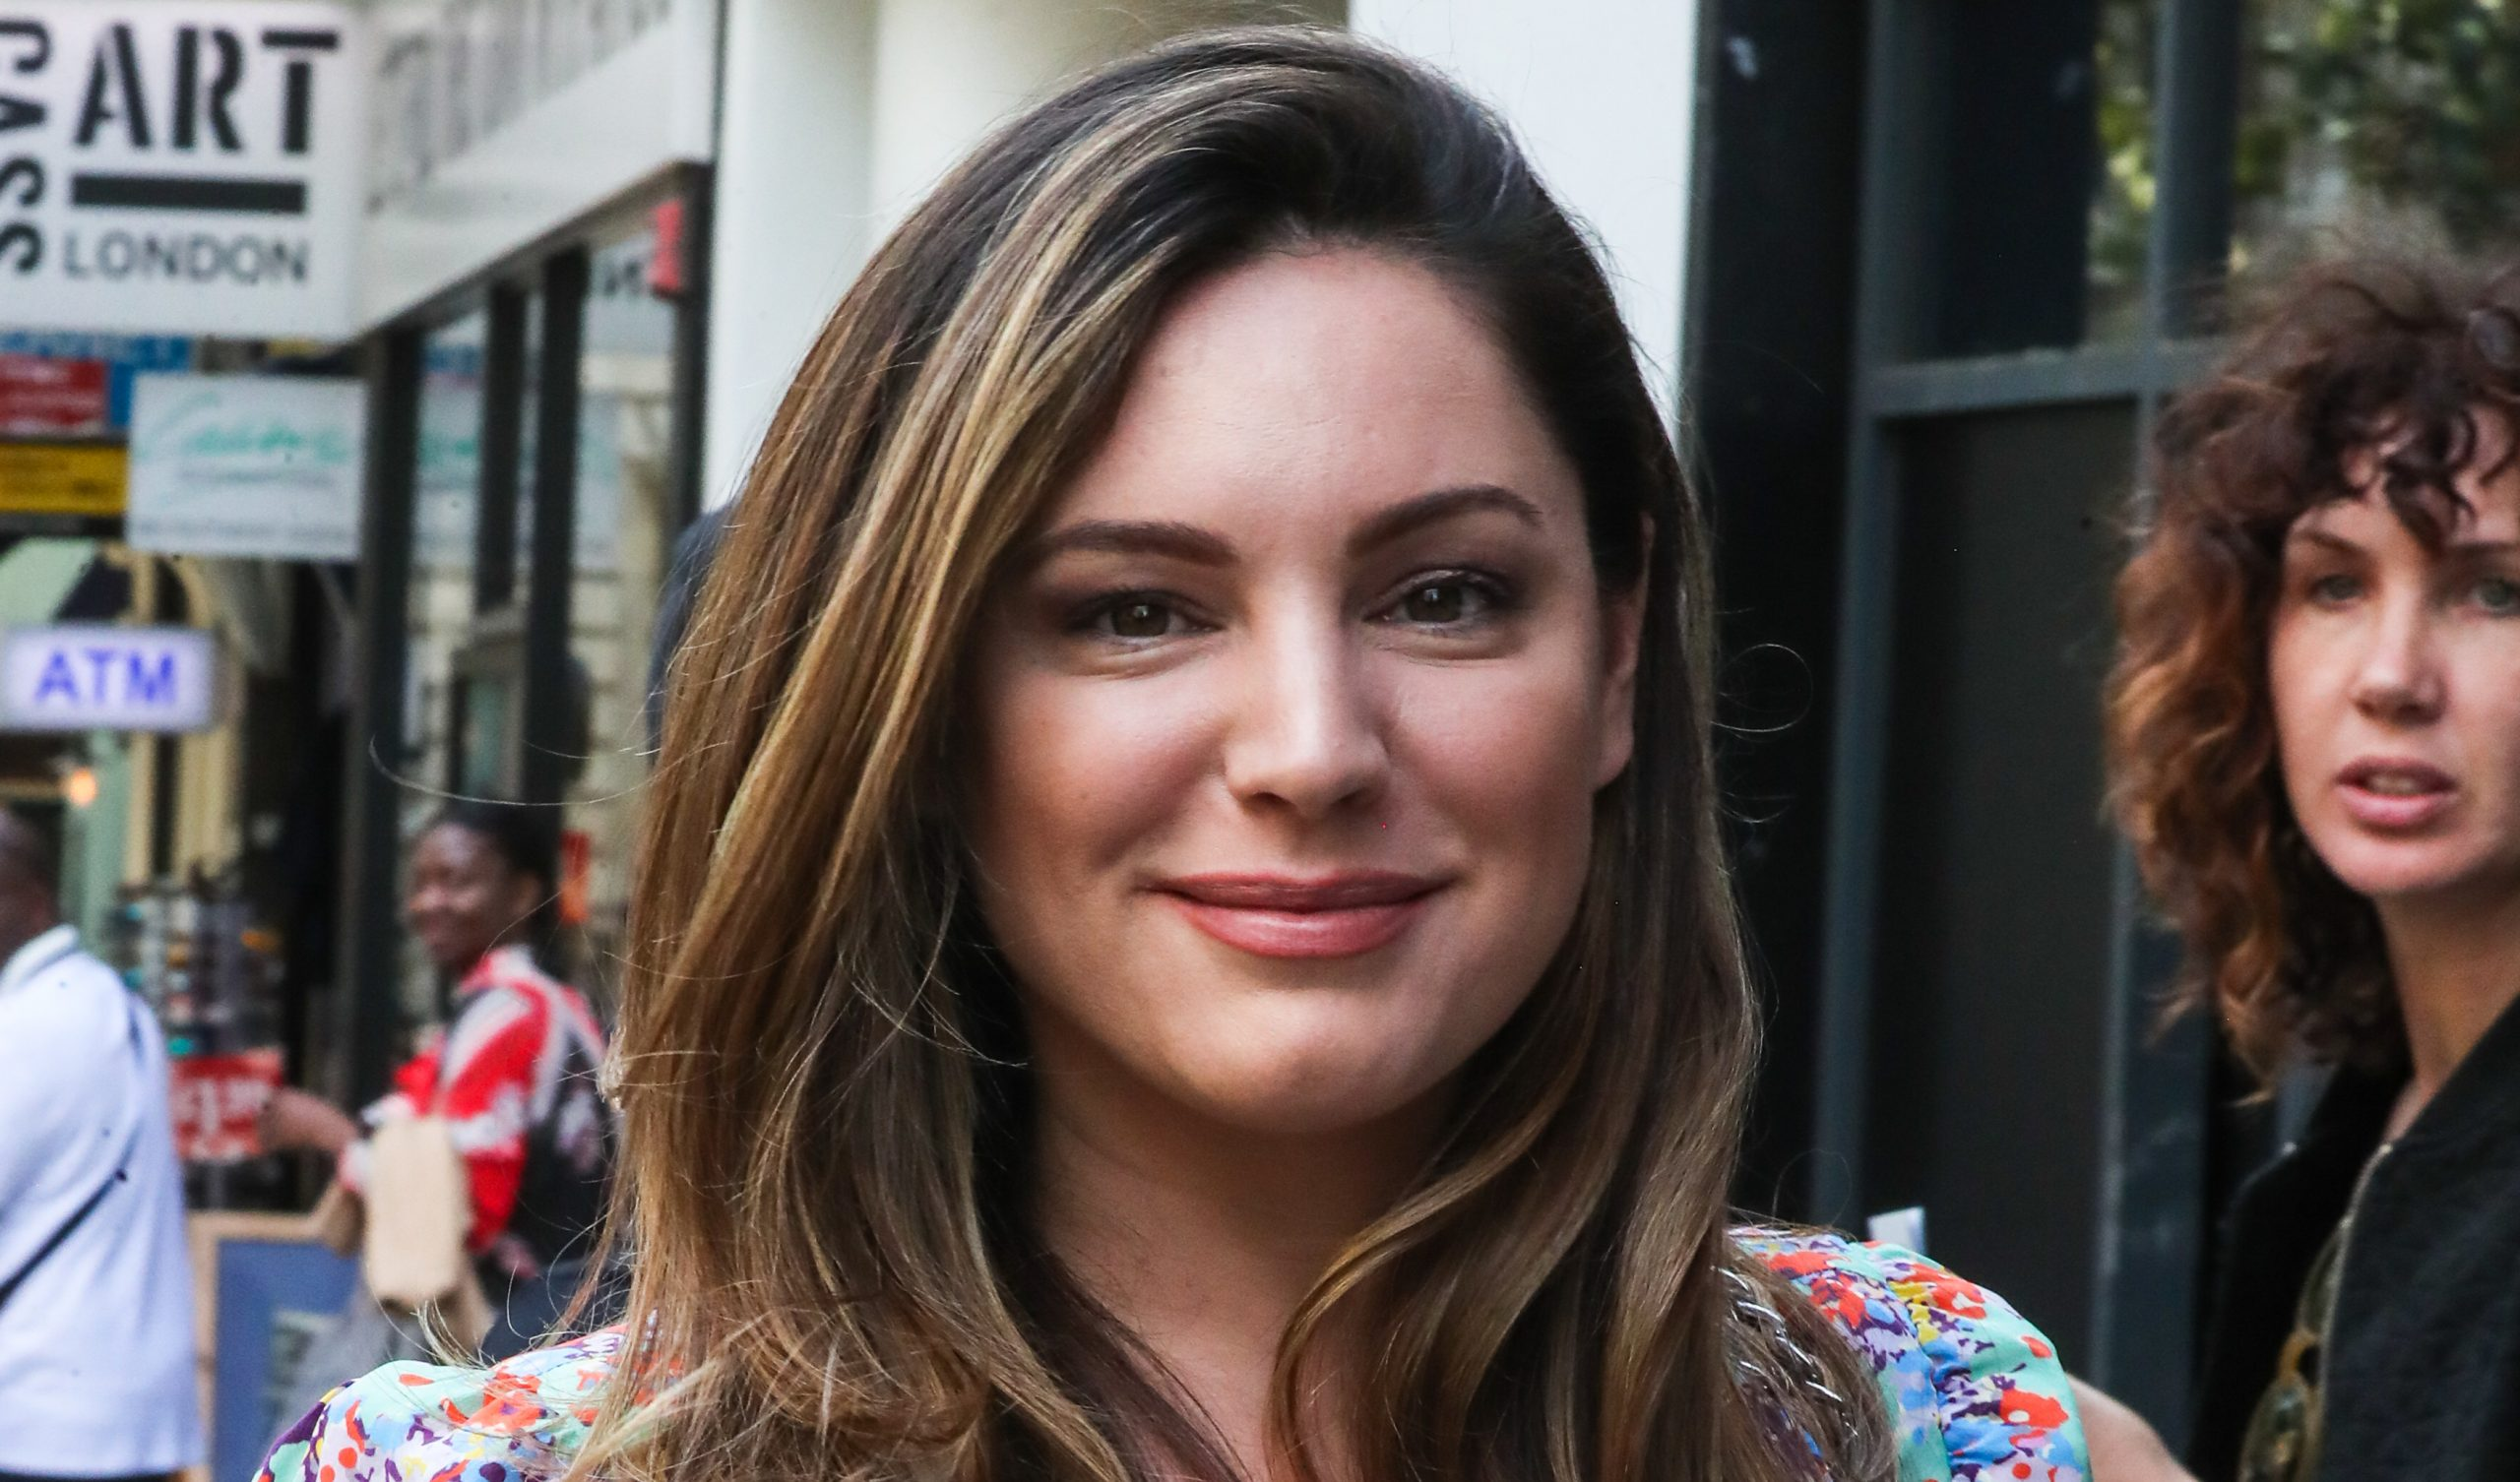 Kelly Brook insists she loves her curves and cellulite in fight back against trolls